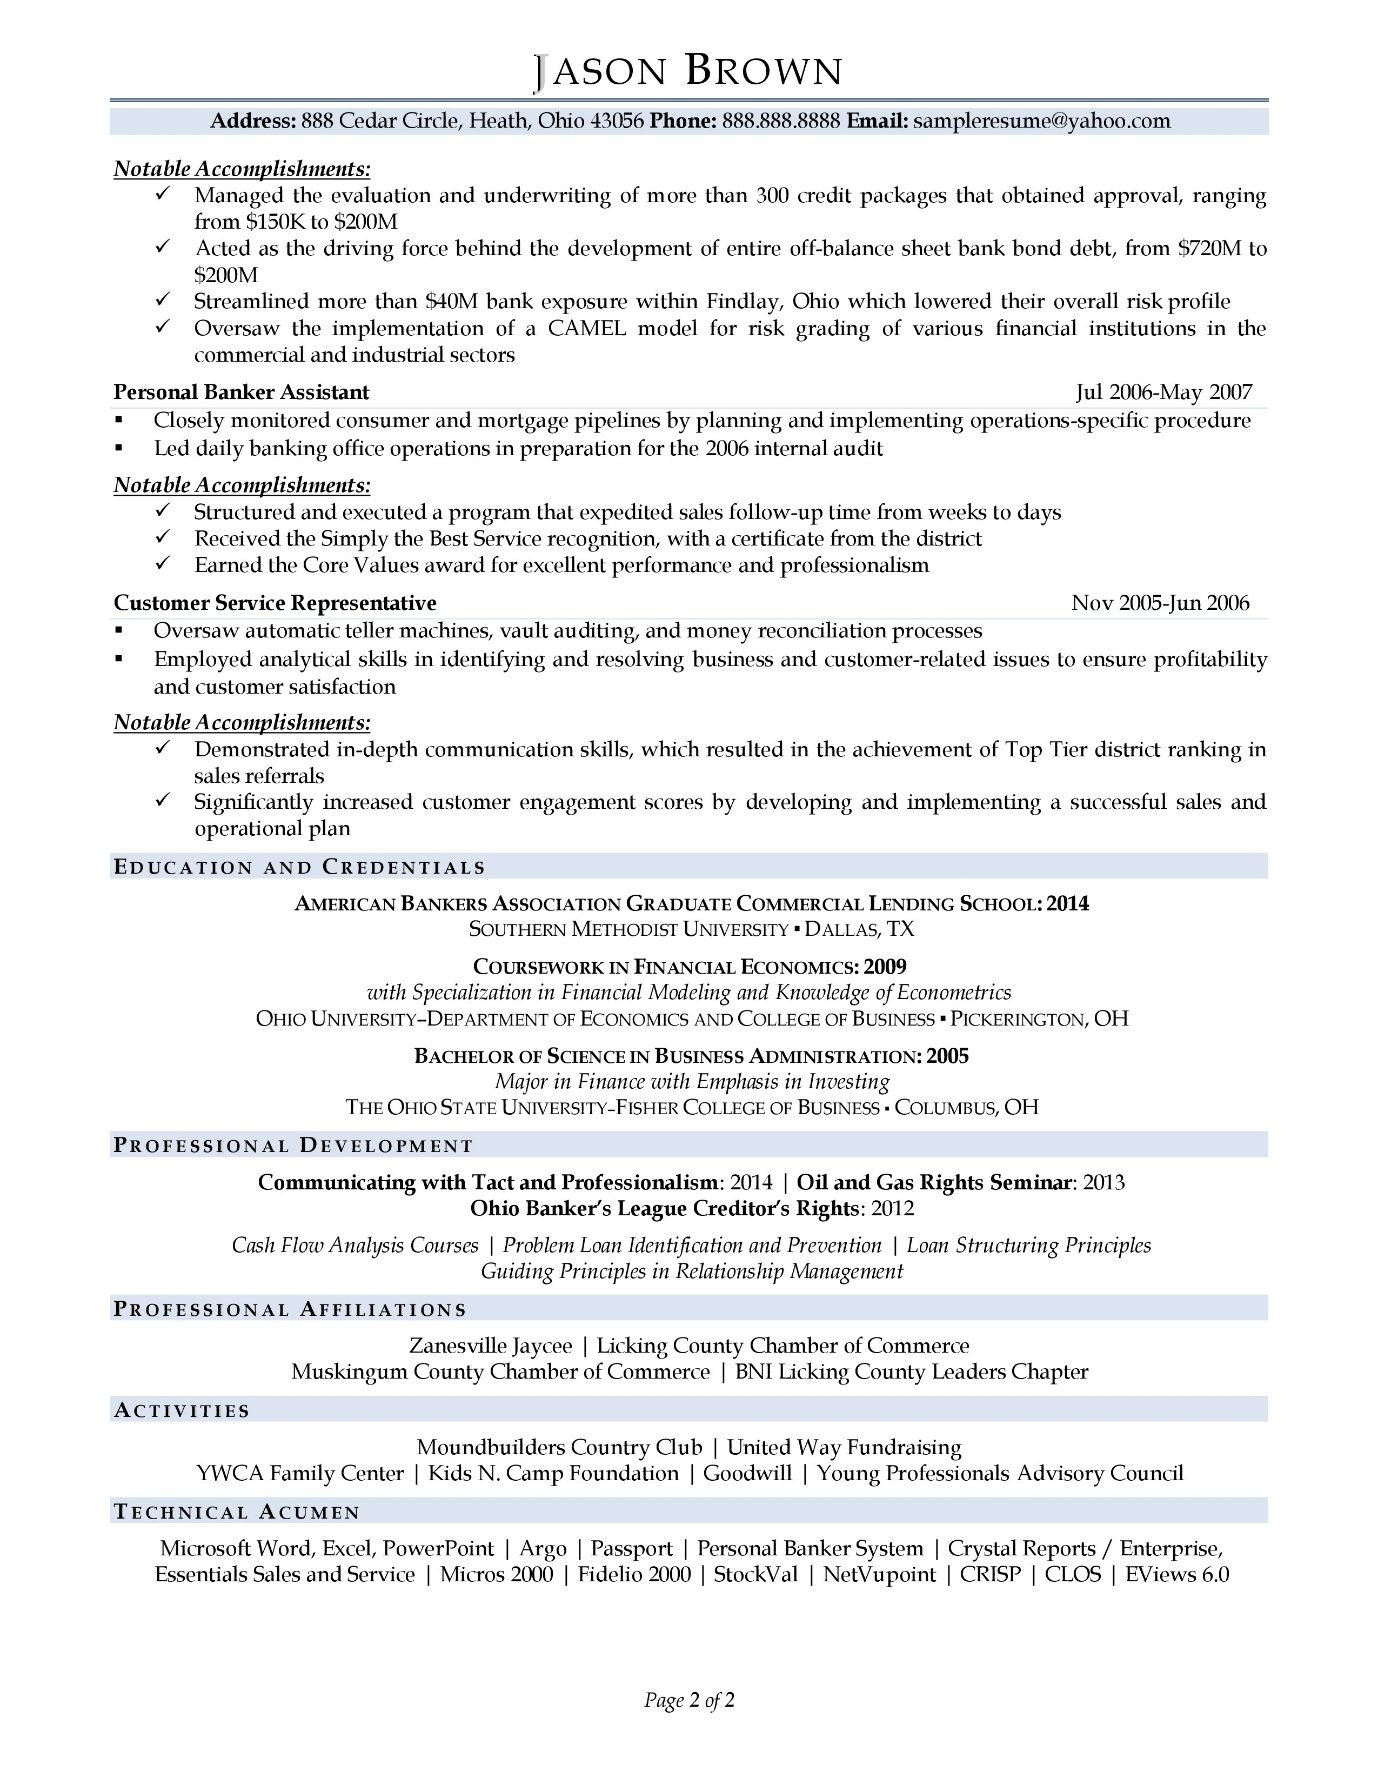 Business banker resume sample with light color accents page 2